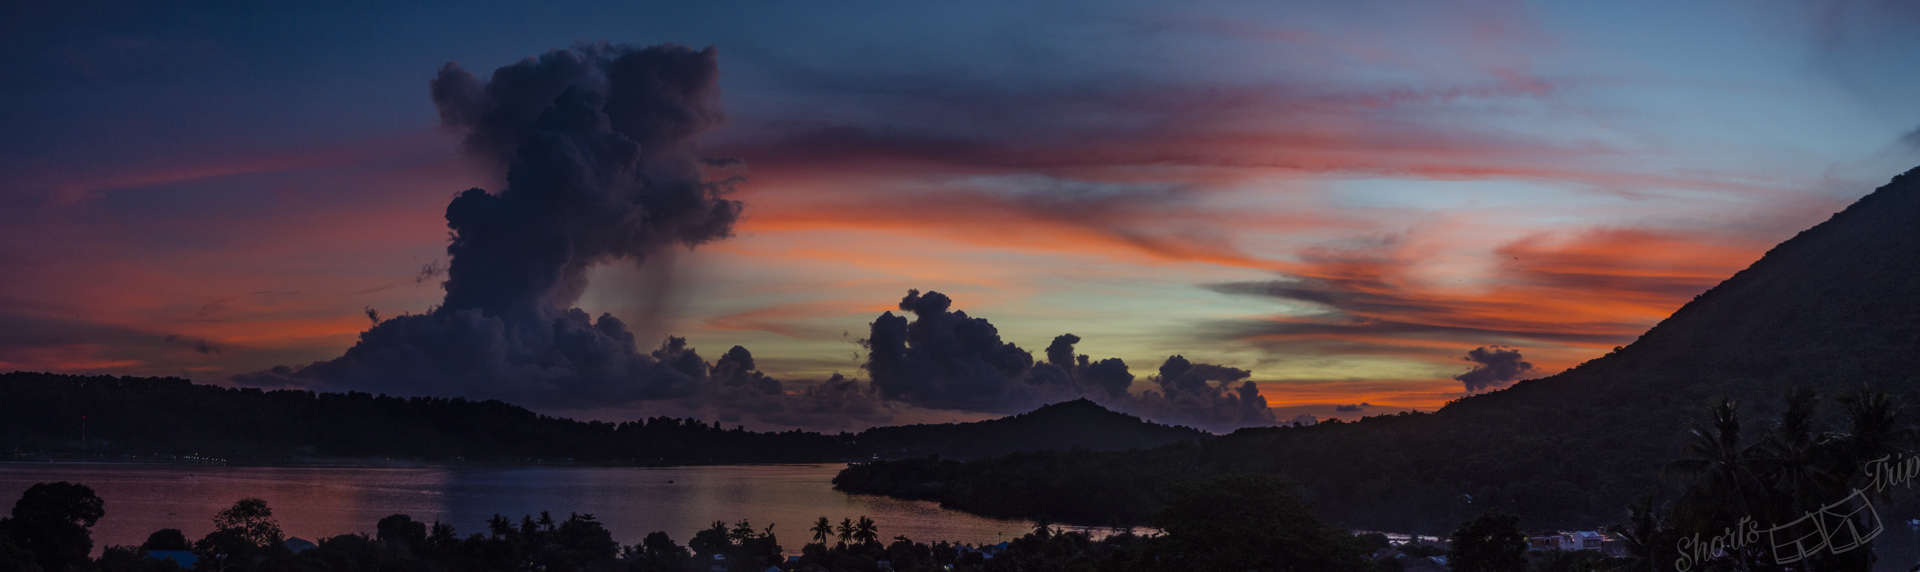 fort belgica, most beautiful sunset indonesia, banda islands indonesia, banda islands, fort belgica sunset, fort belgica view